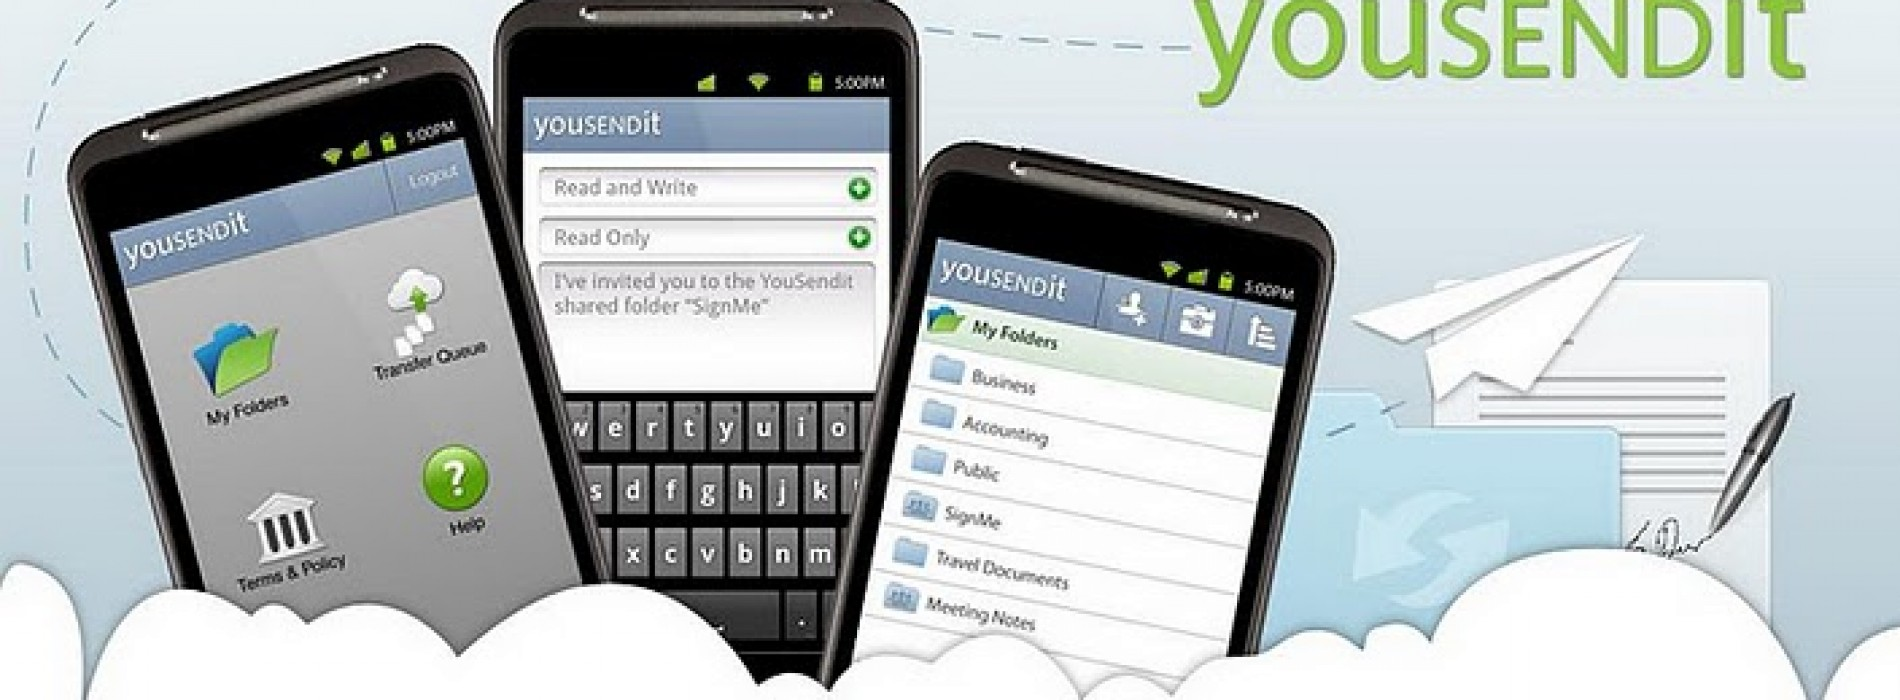 YouSendIt application hits Android Market, full of handy features